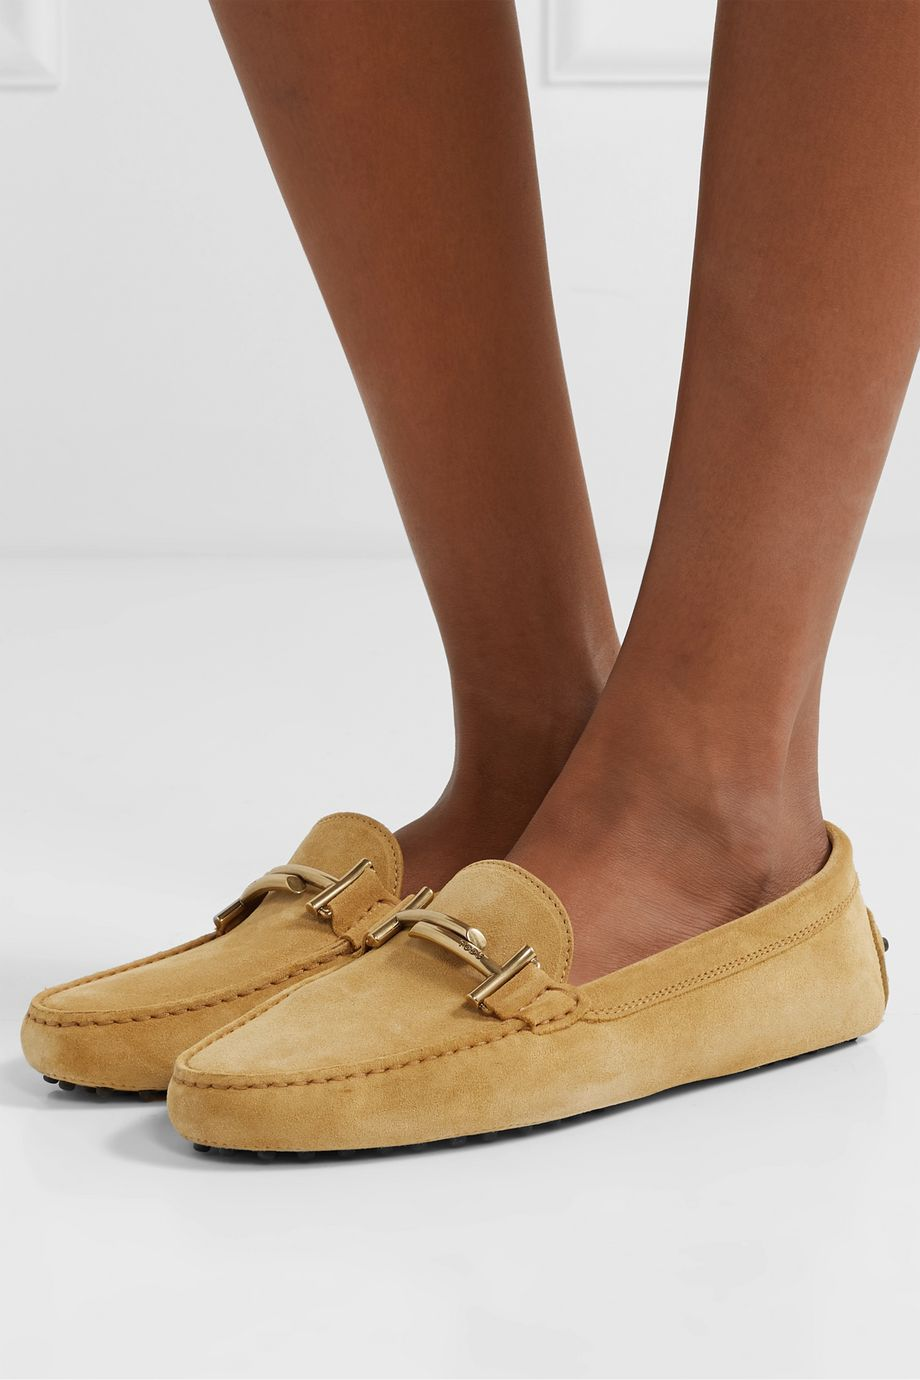 Tod's Gommino embellished suede loafers